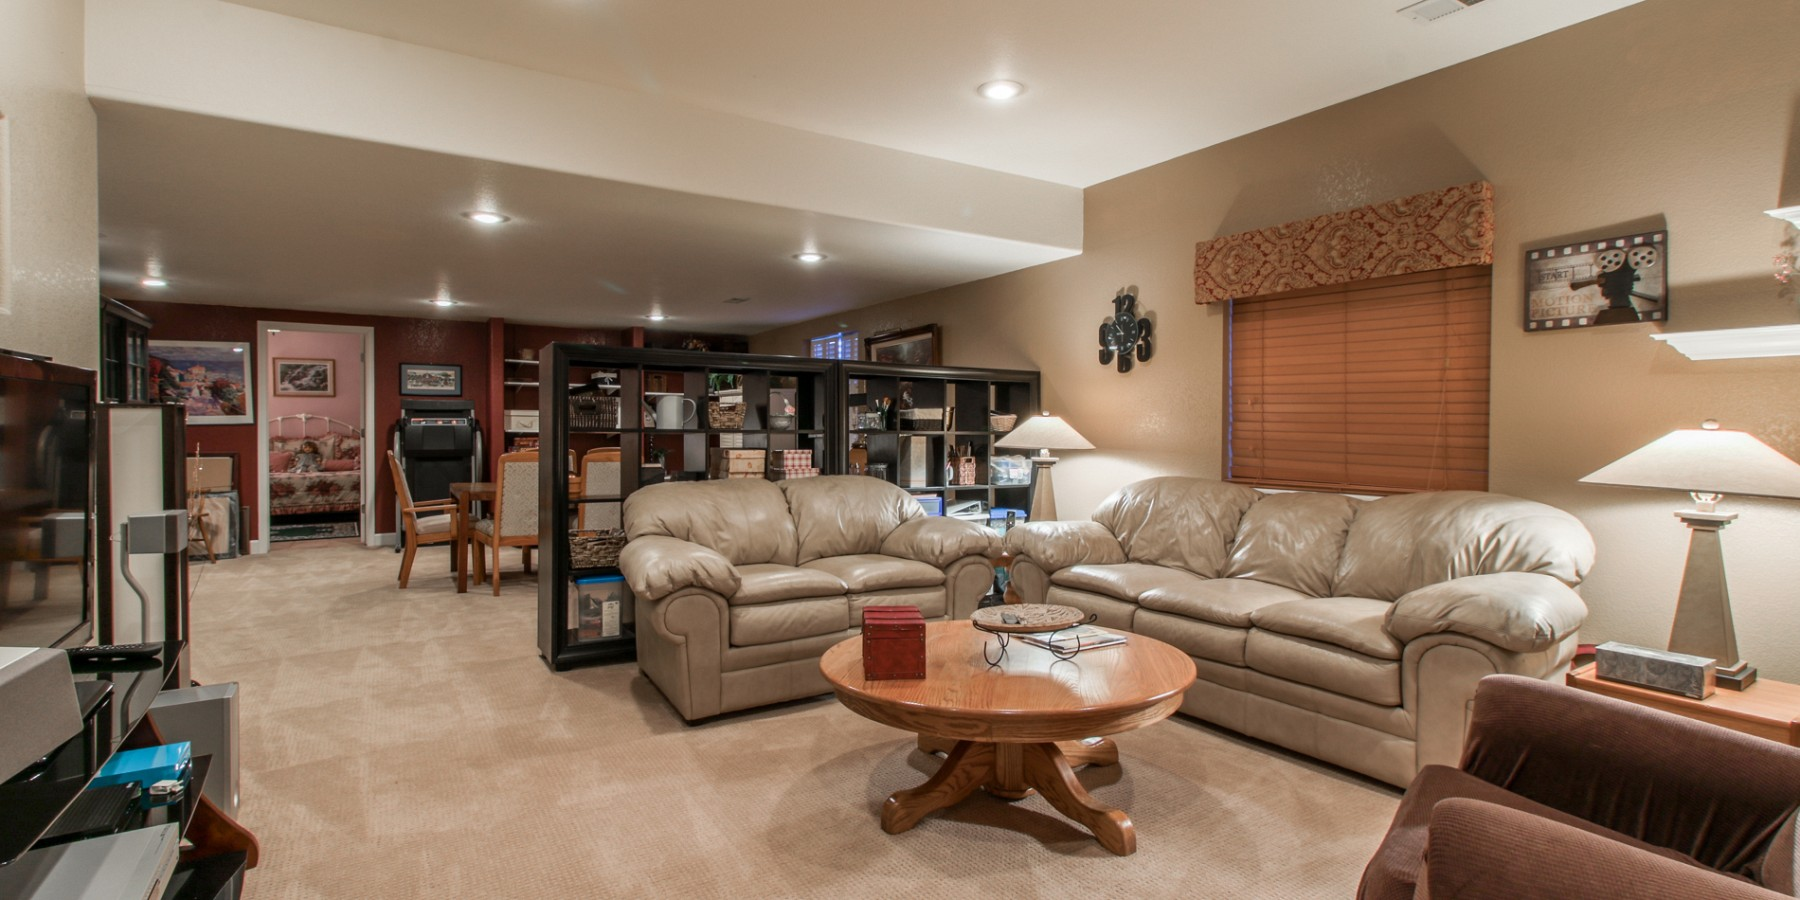 6900 West Grant Ranch Boulevard #10, Littleton, CO 80123